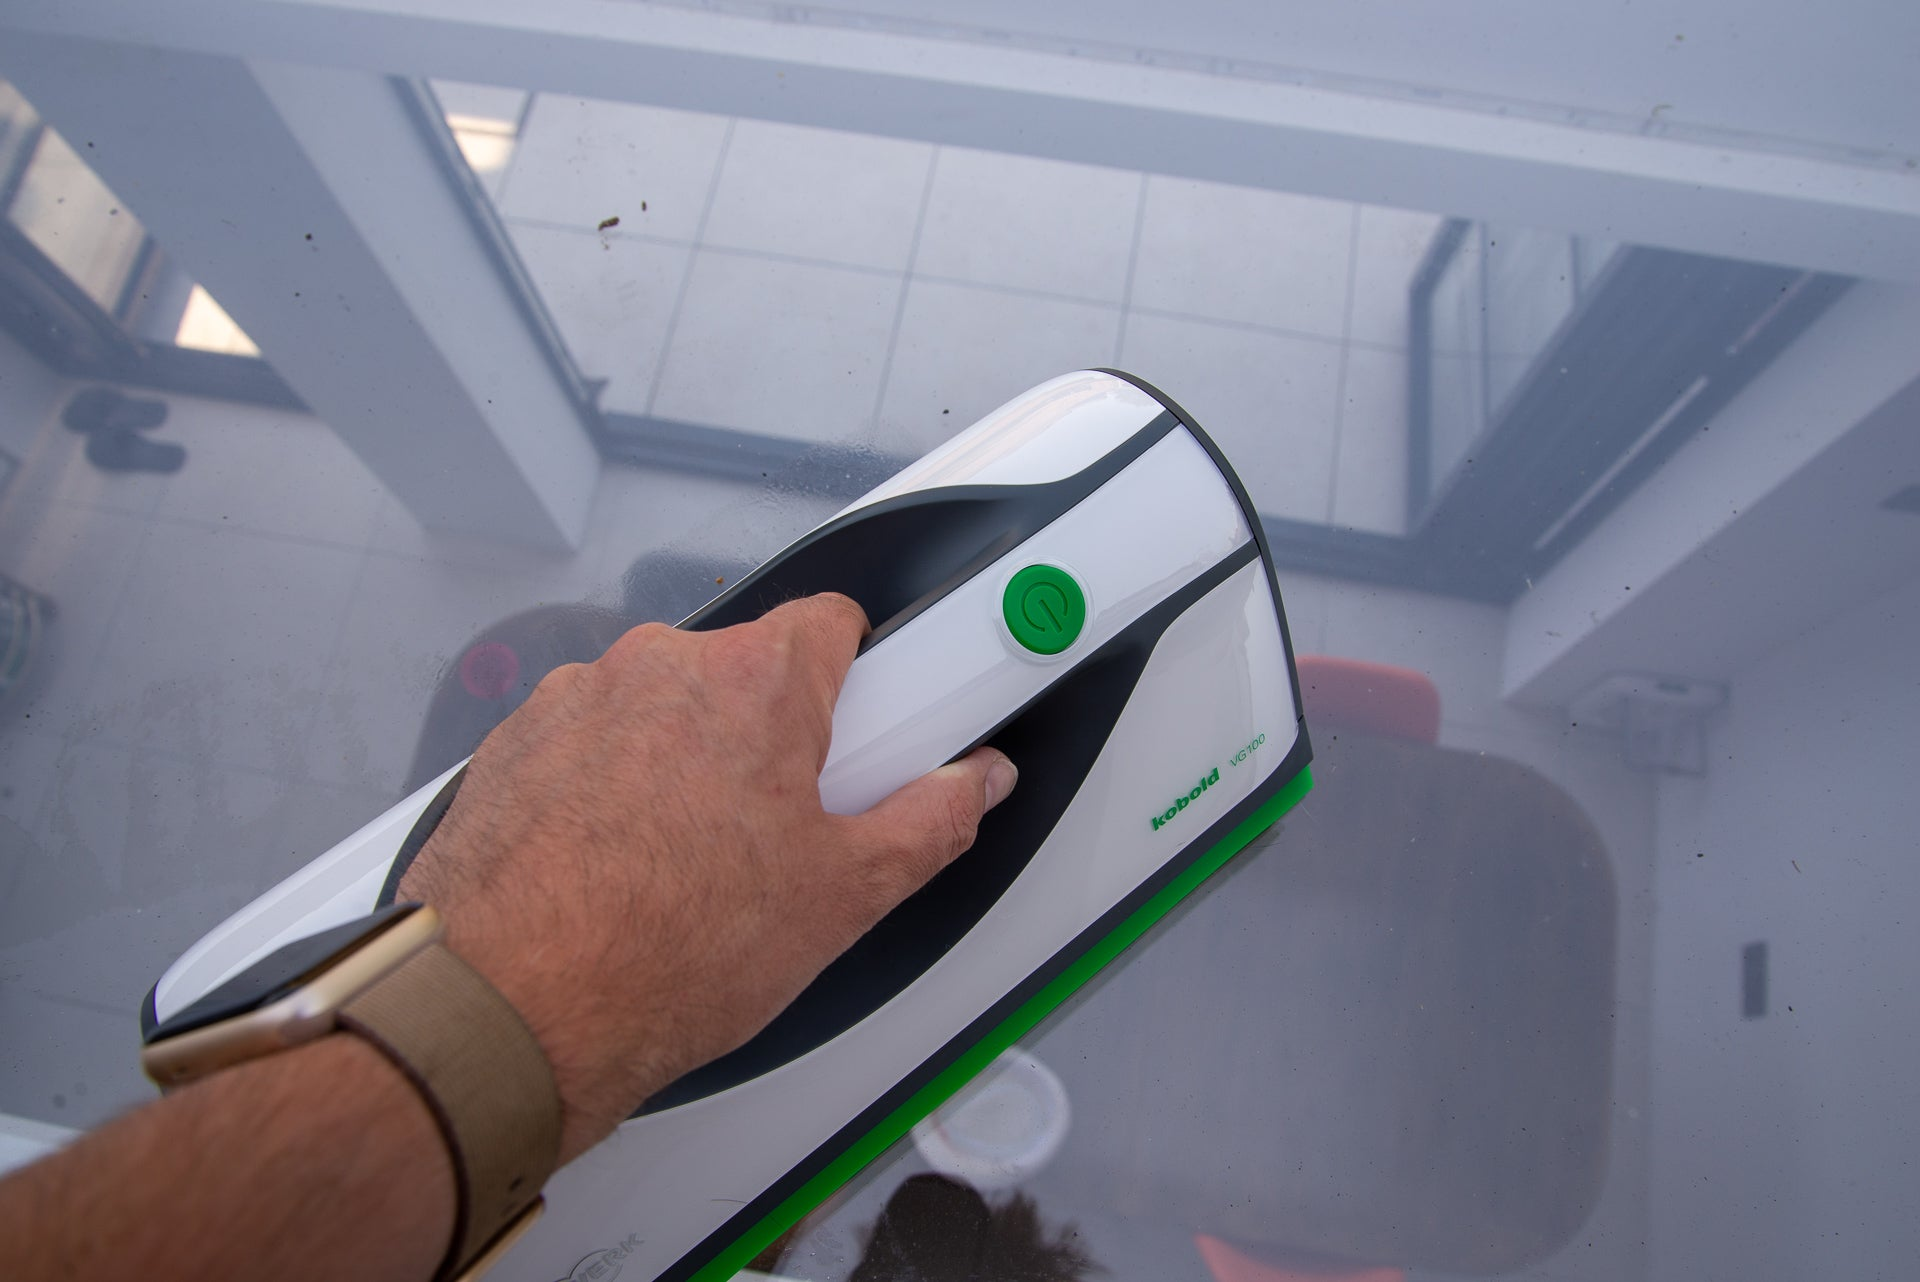 Vorwerk Kobold VG100 Window Cleaner in use